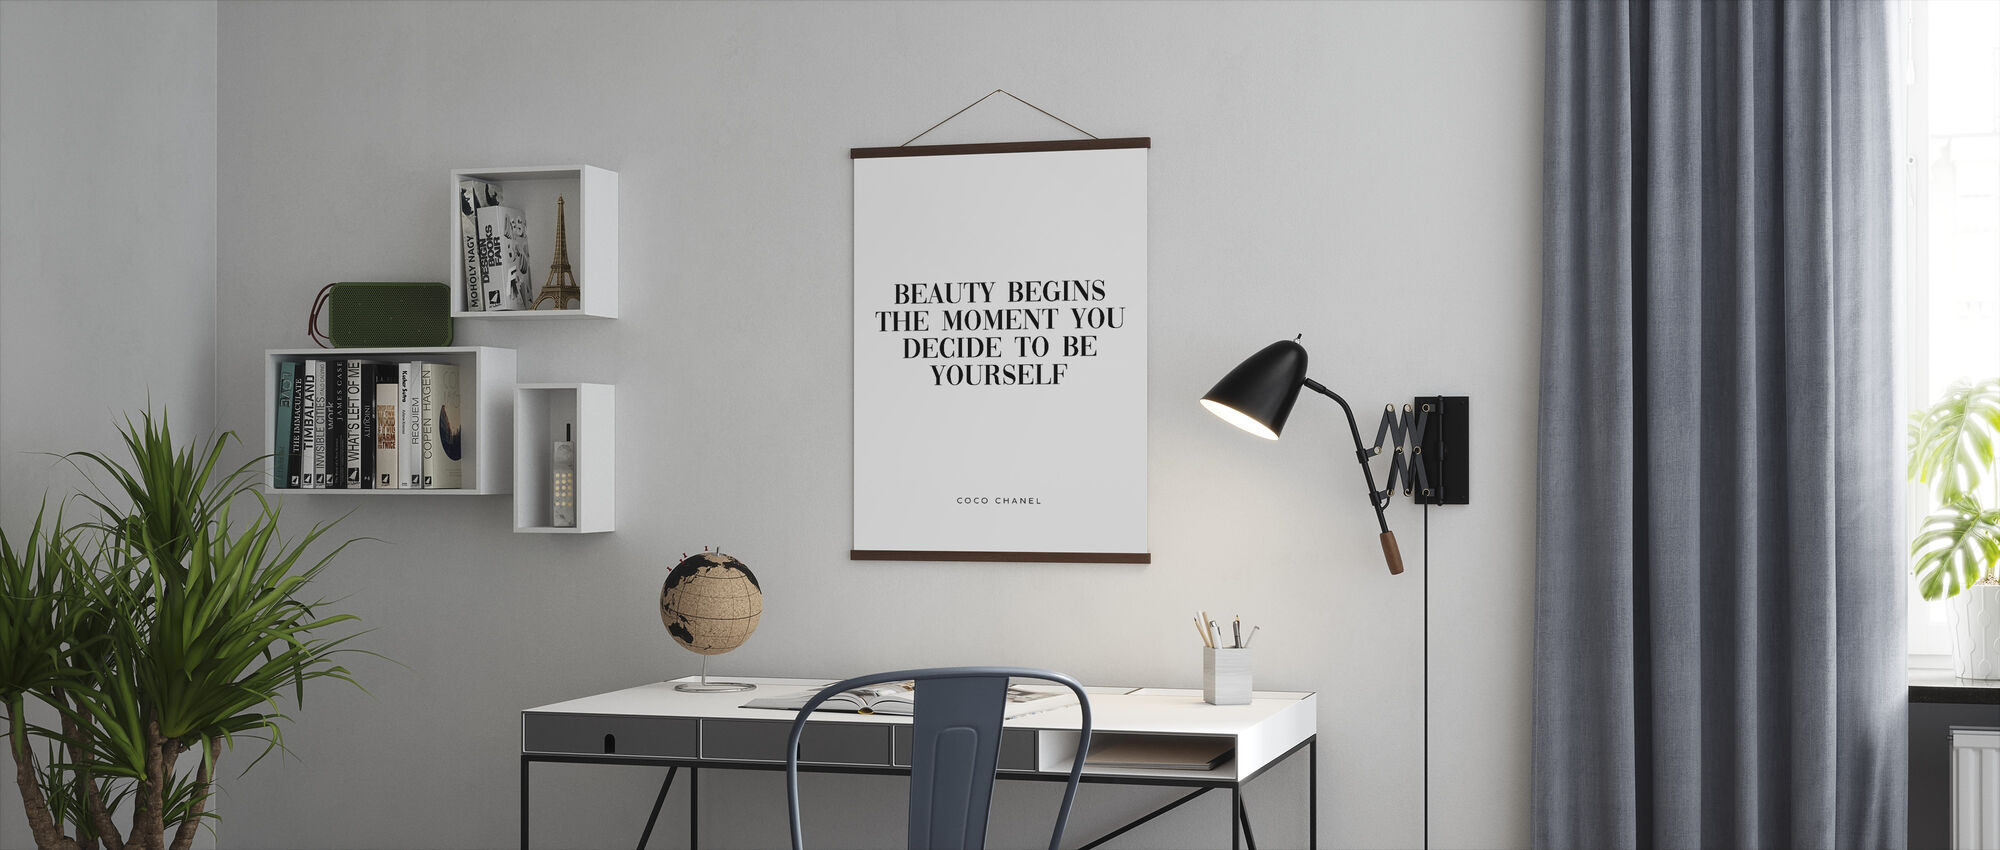 Coco Chanel Quote Style With A Poster Photowall